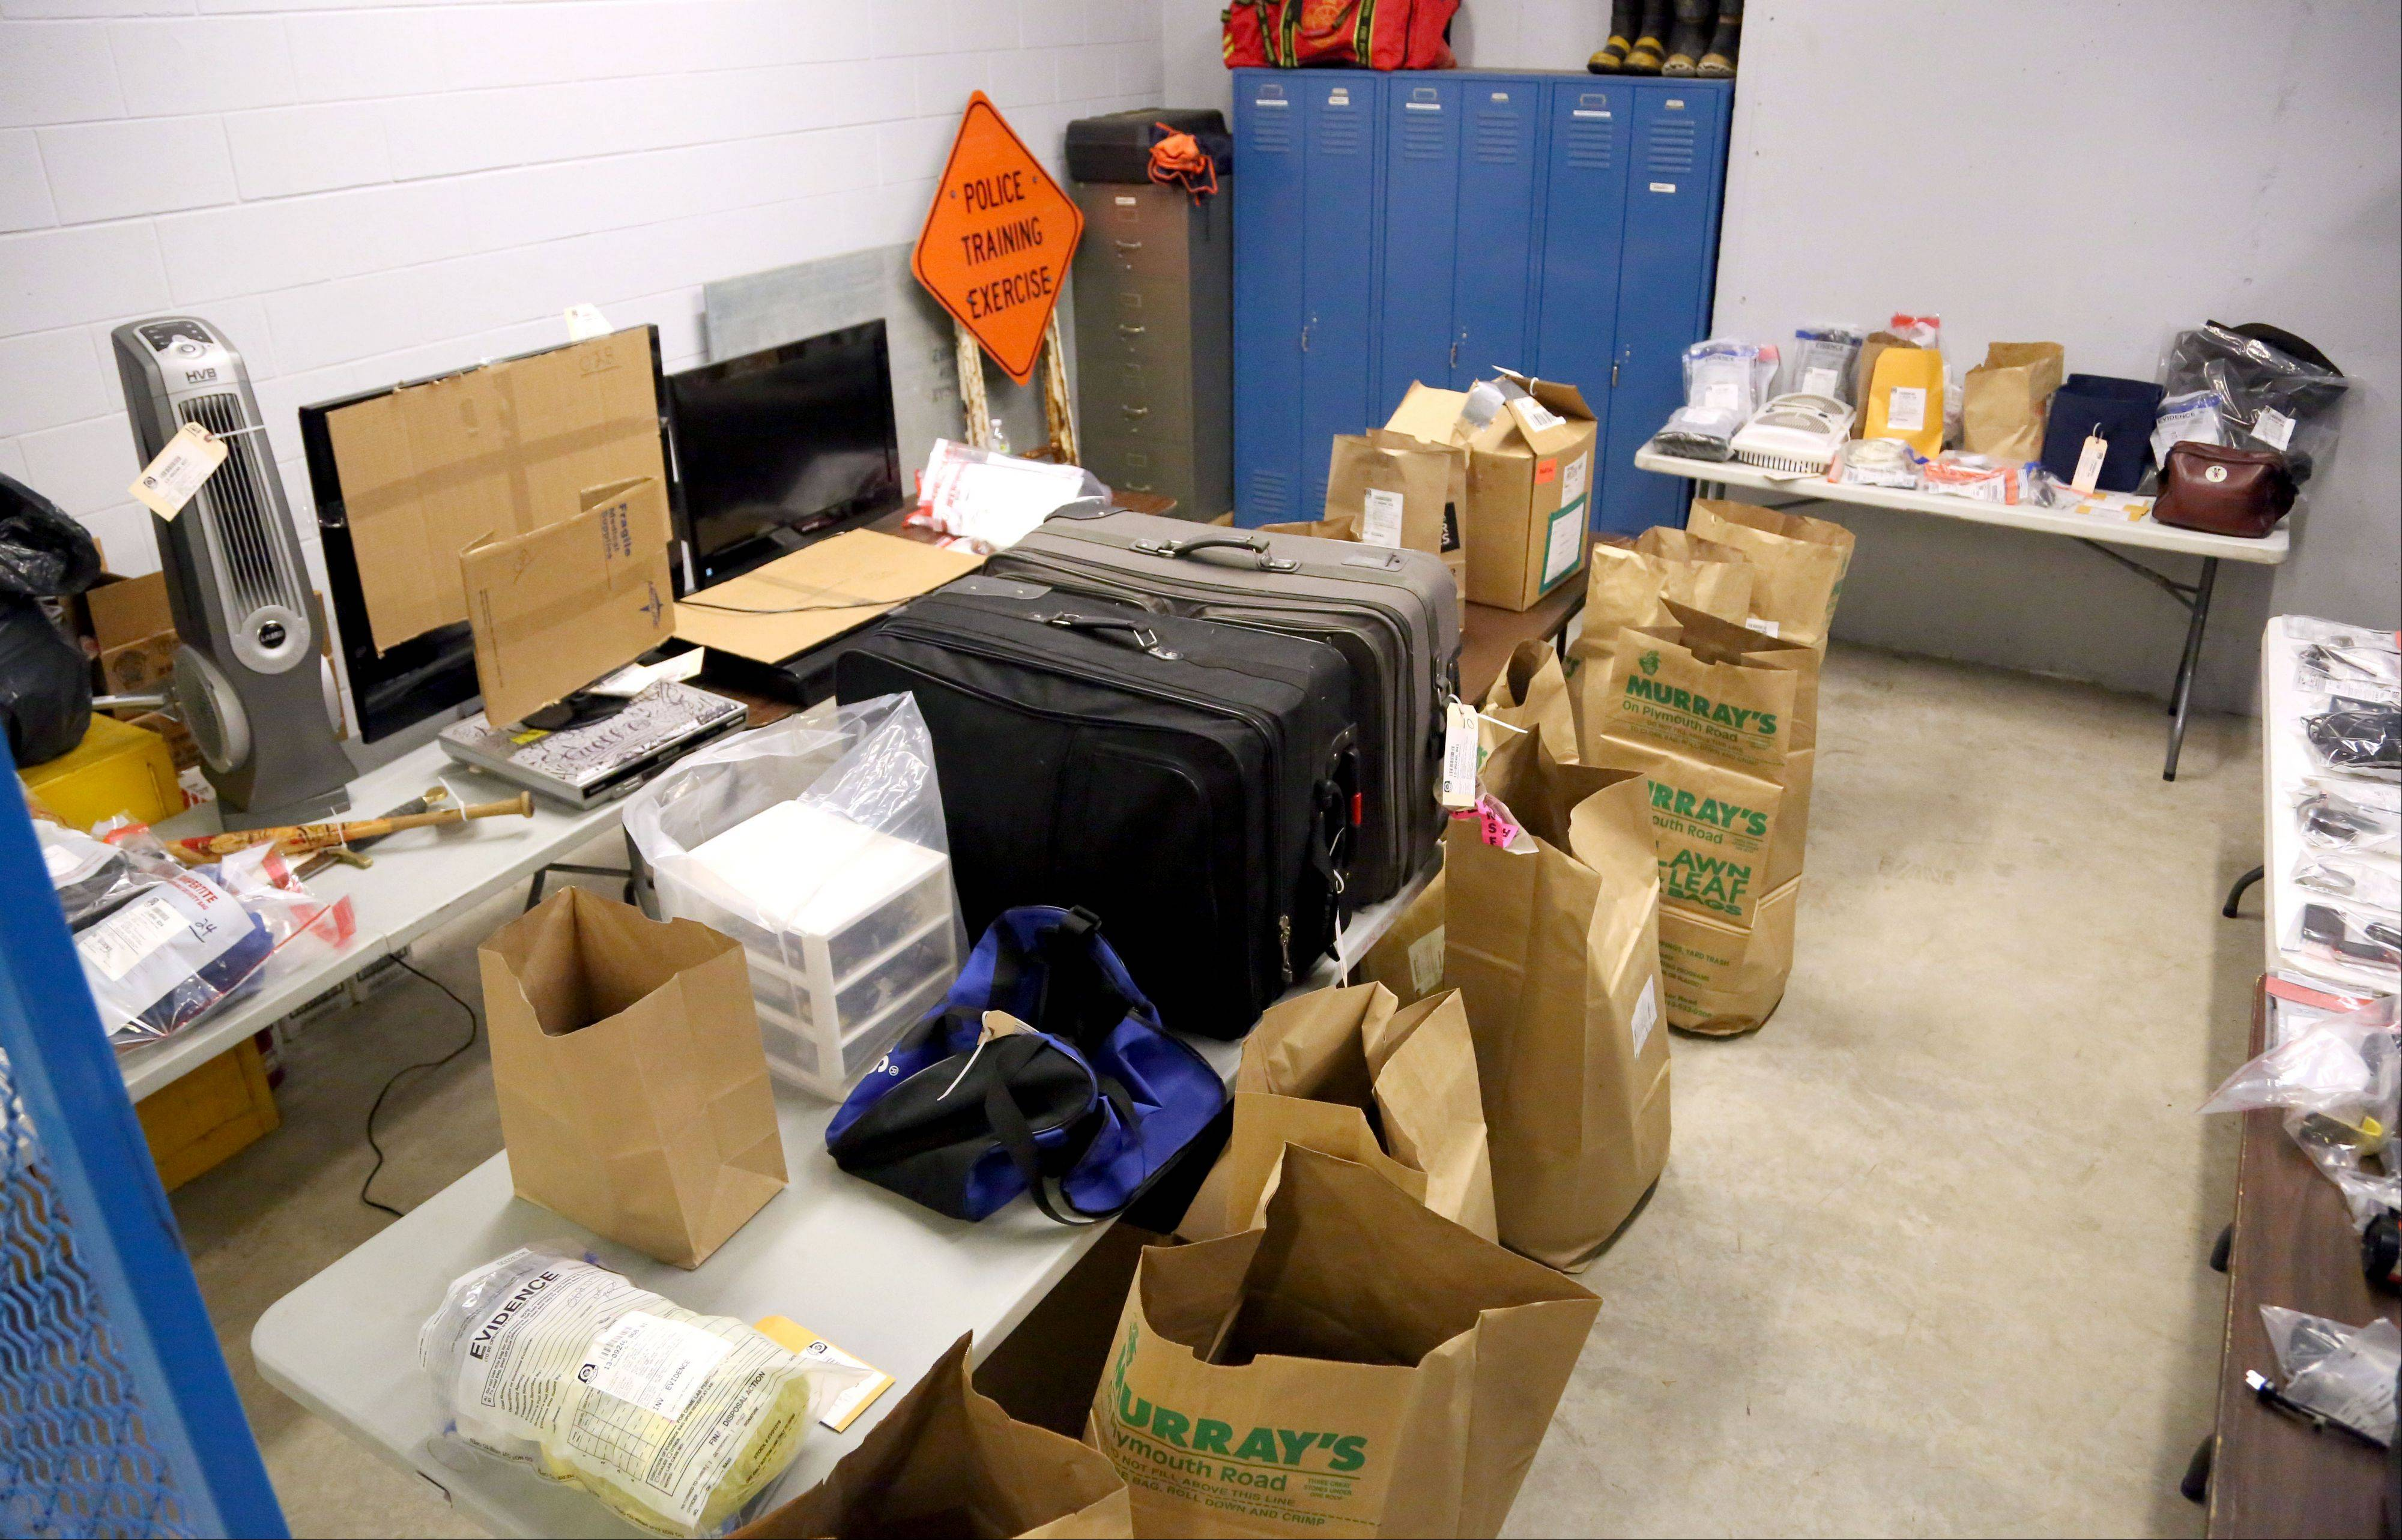 Stolen items recovered after two men were arrested for burglarizing a house in Mundelein are stored in a room at the Mundelein Police Station.